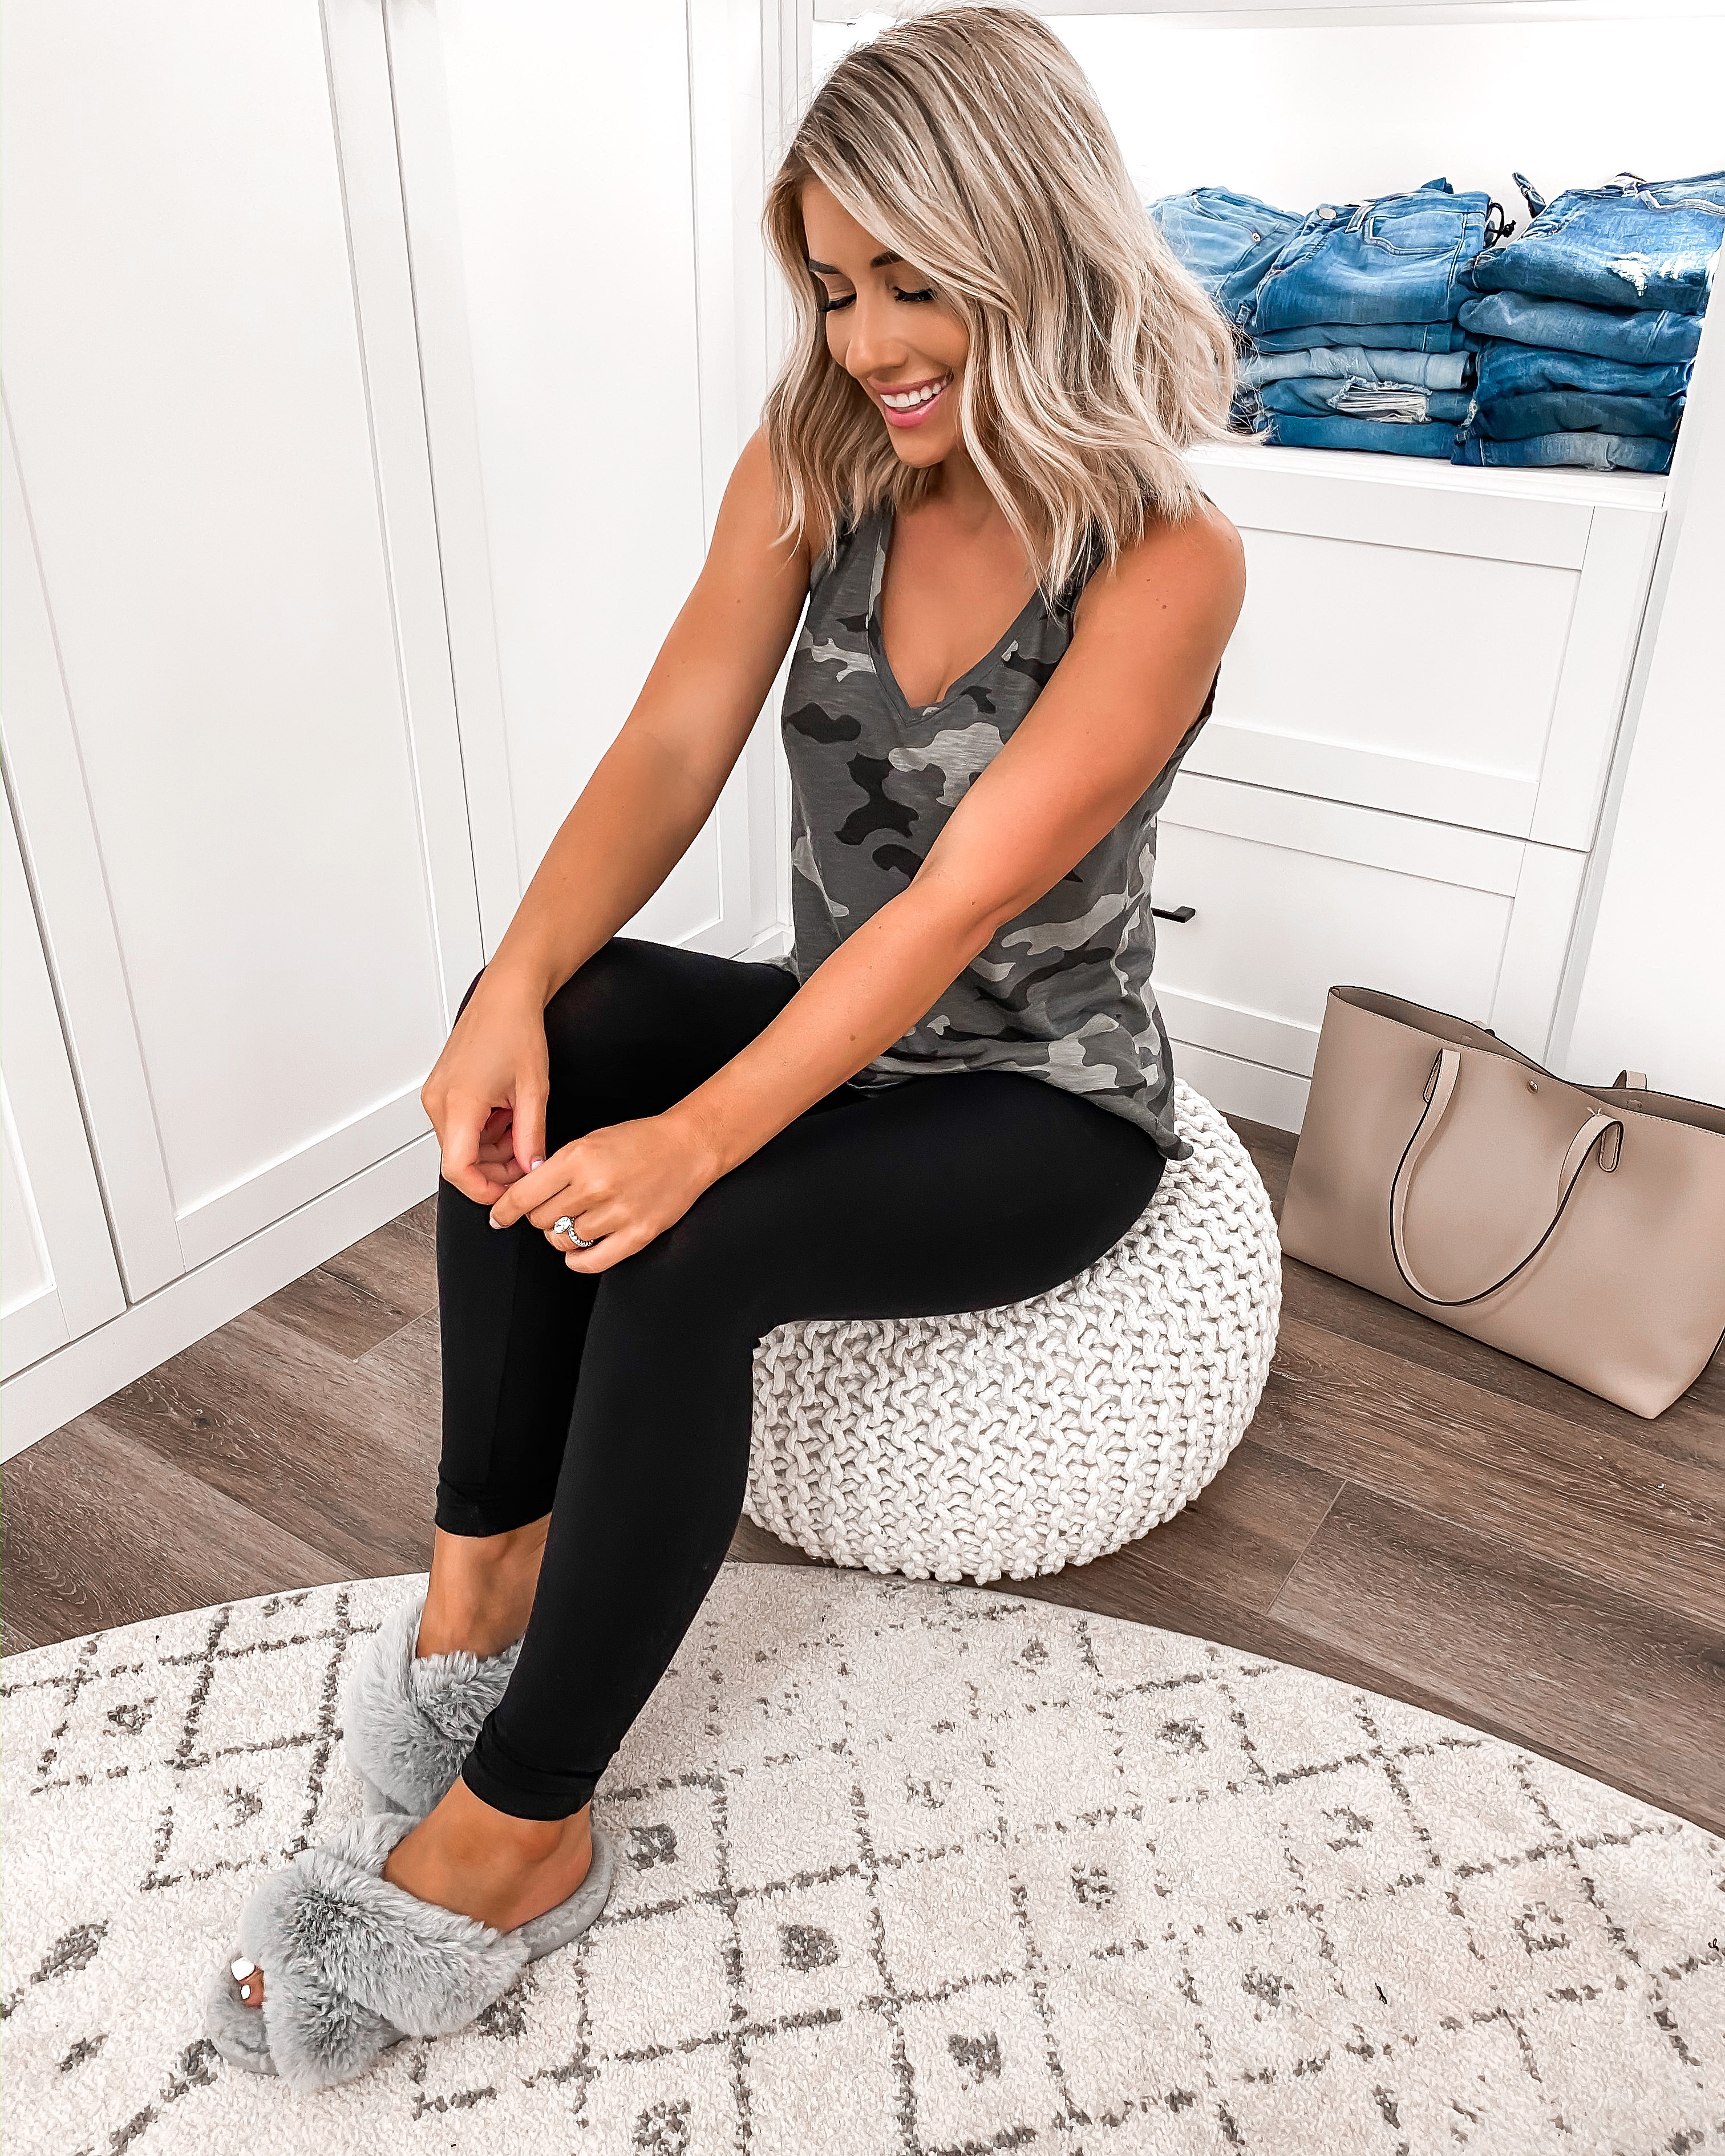 LAURA BEVERLIN BASIC LEGGINGS UNDER $20 CAMO TANK TOP CASUAL LOUNGE OUTFIT1